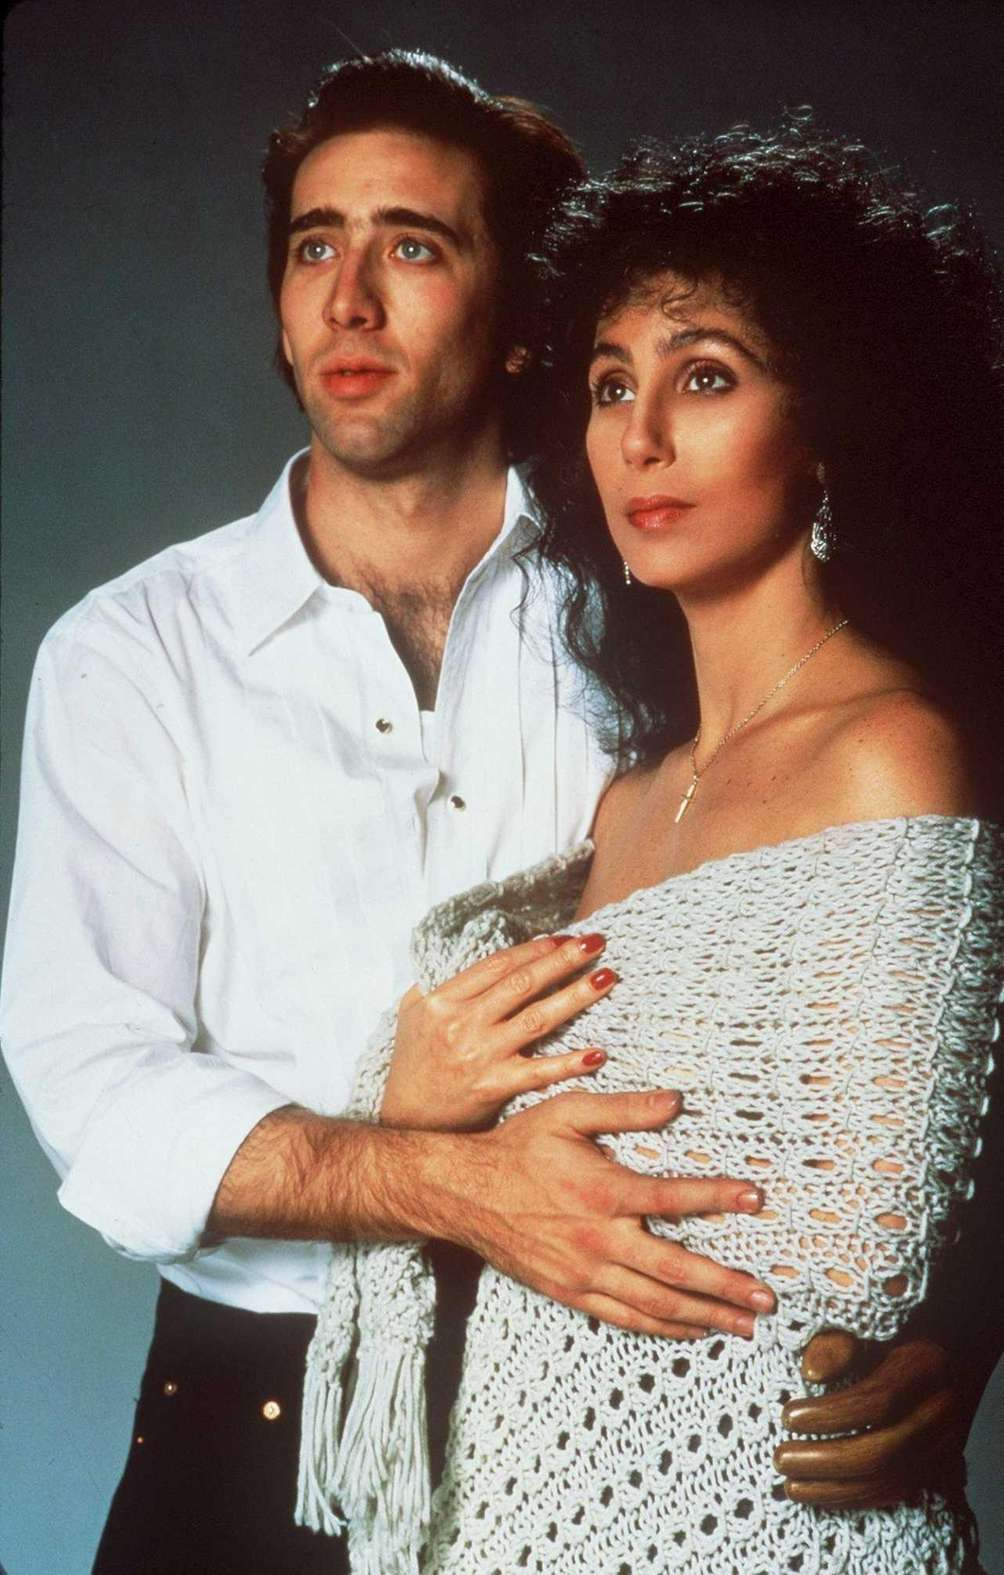 Nicolas Cage and Cher, in a scene from